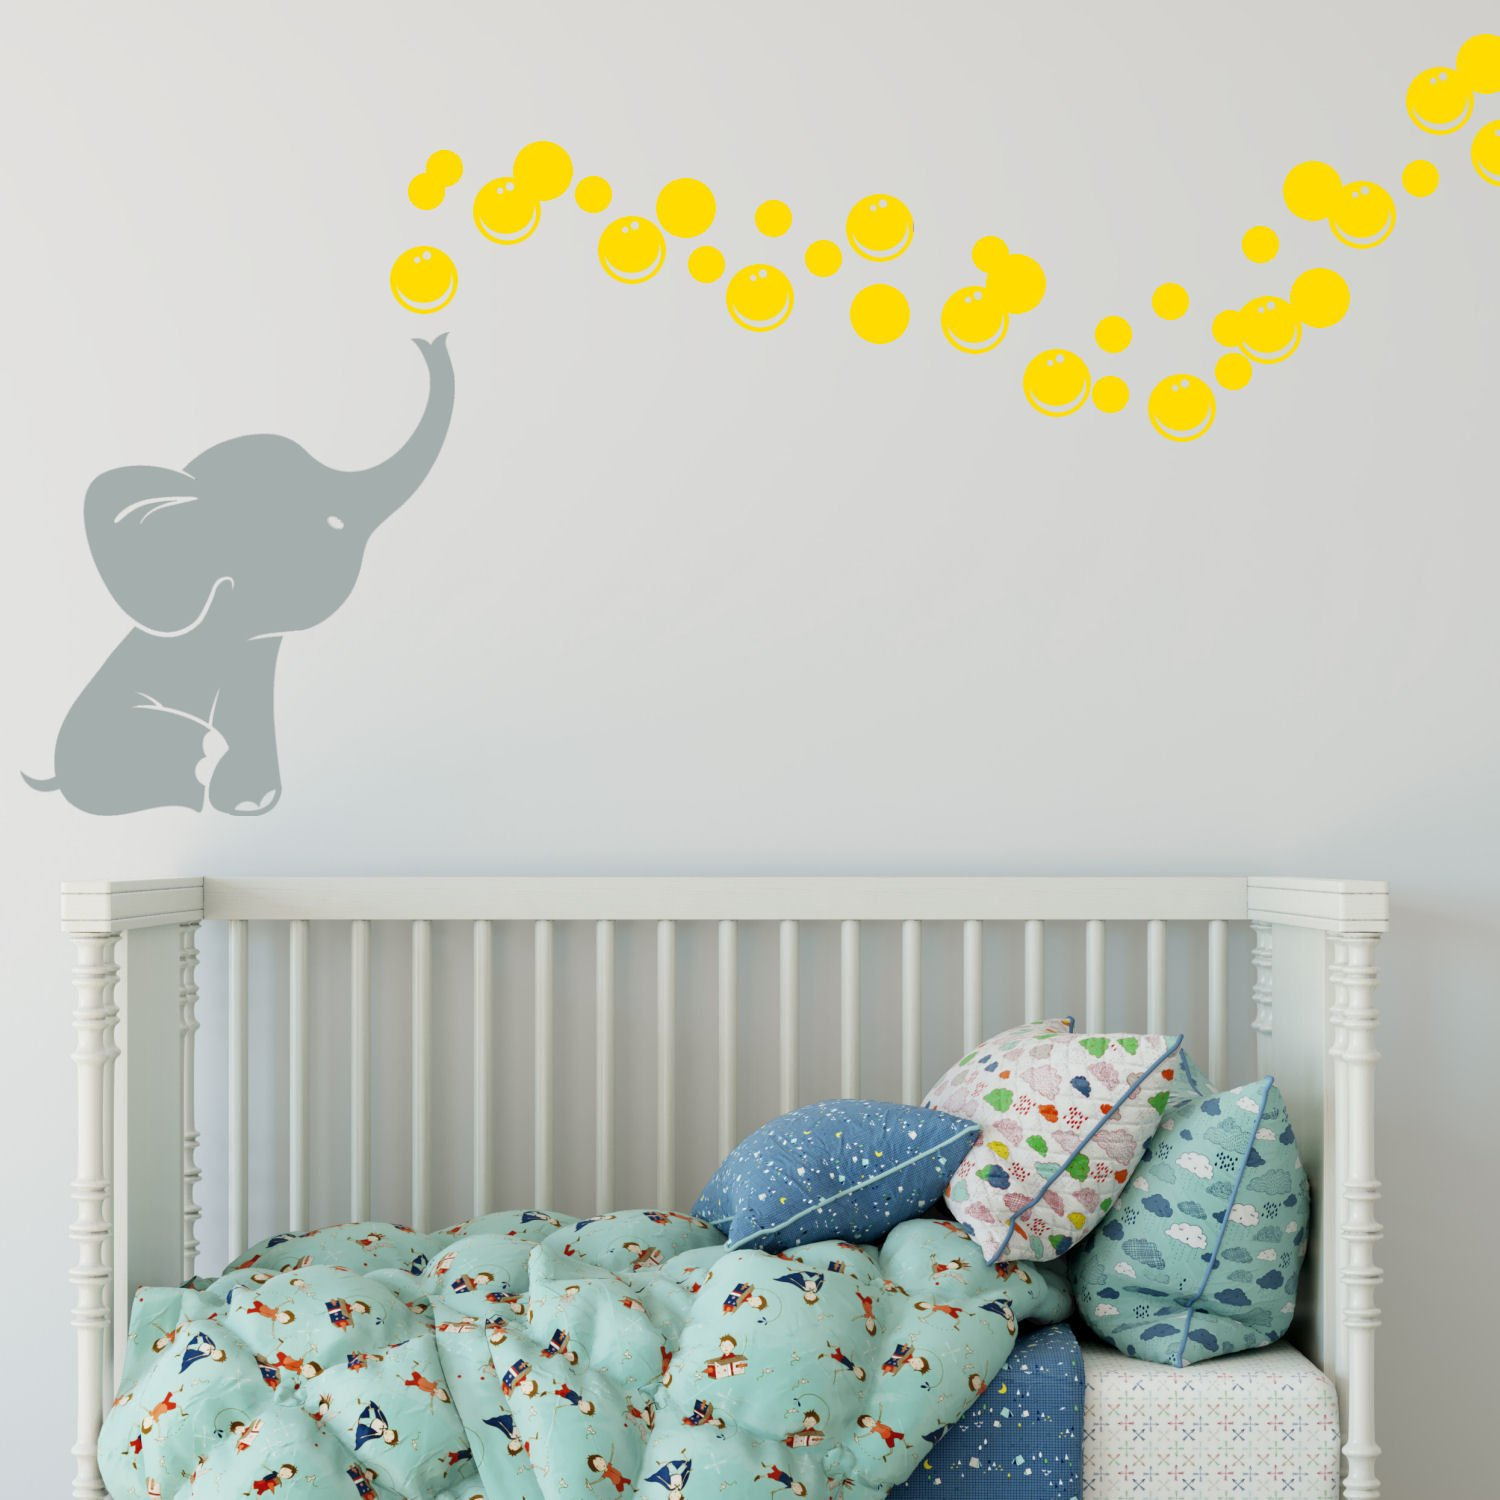 Elephant Bubbles Vinyl Wall Decal Custom, Choose Elephant and Bubble Color Makes a great baby shower gift, nursery room decor - gry yellow